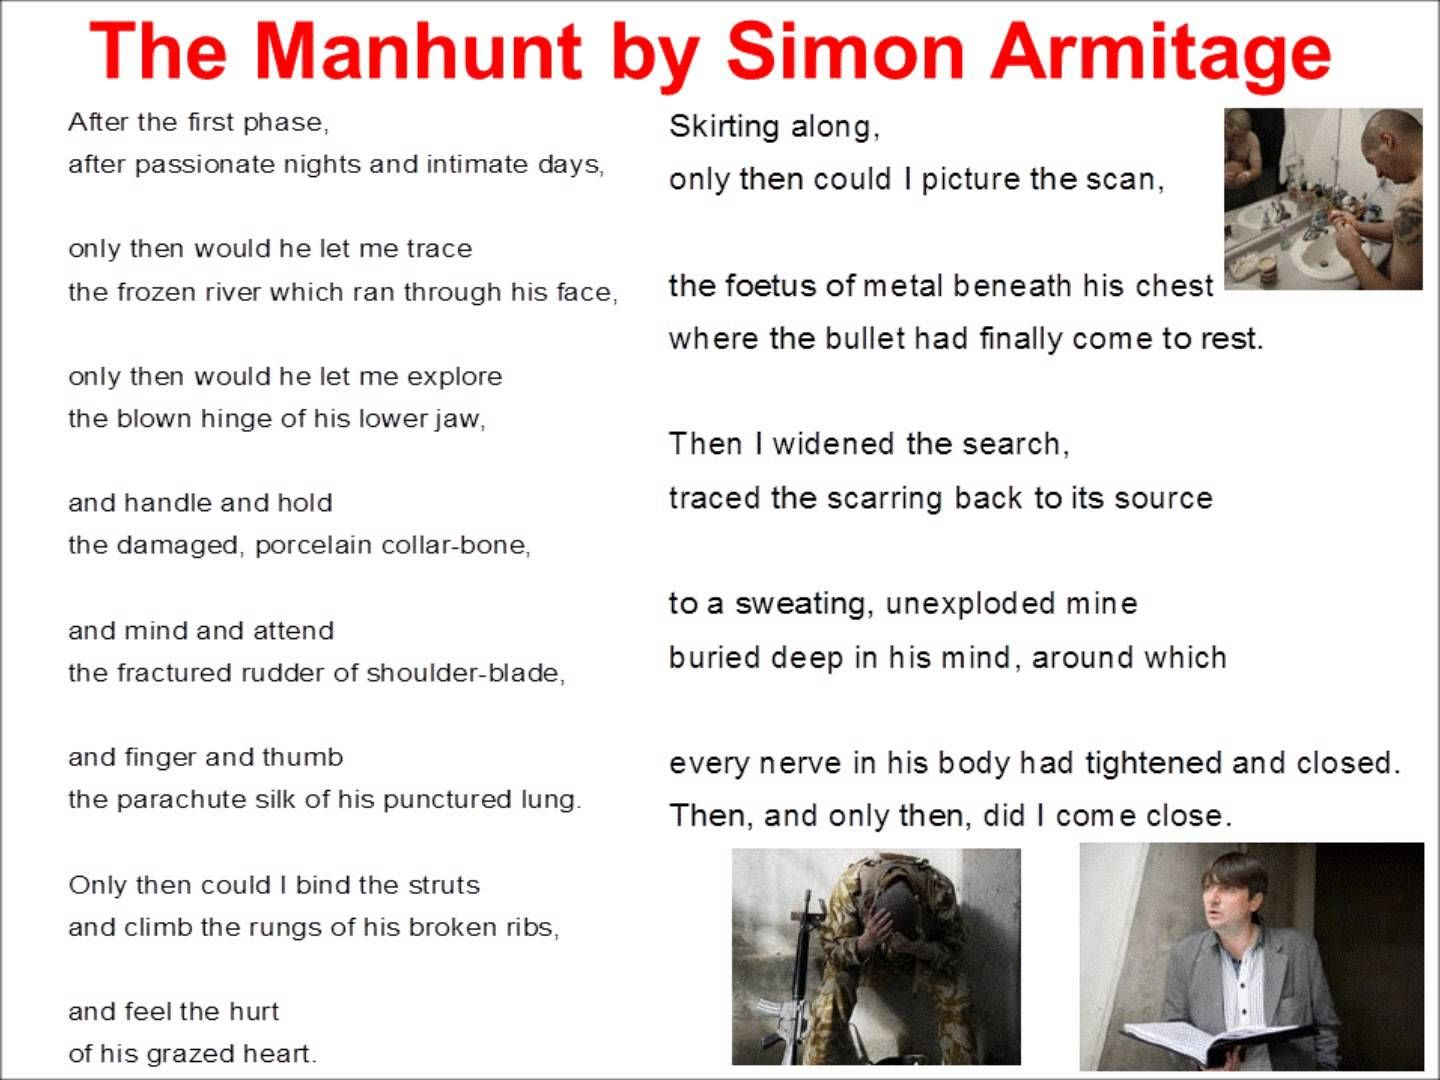 to his coy mistress by andrew marvell to his coy mistress to his coy mistress by andrew marvell by literature today uk acircmiddot the manhunt by simon armitage